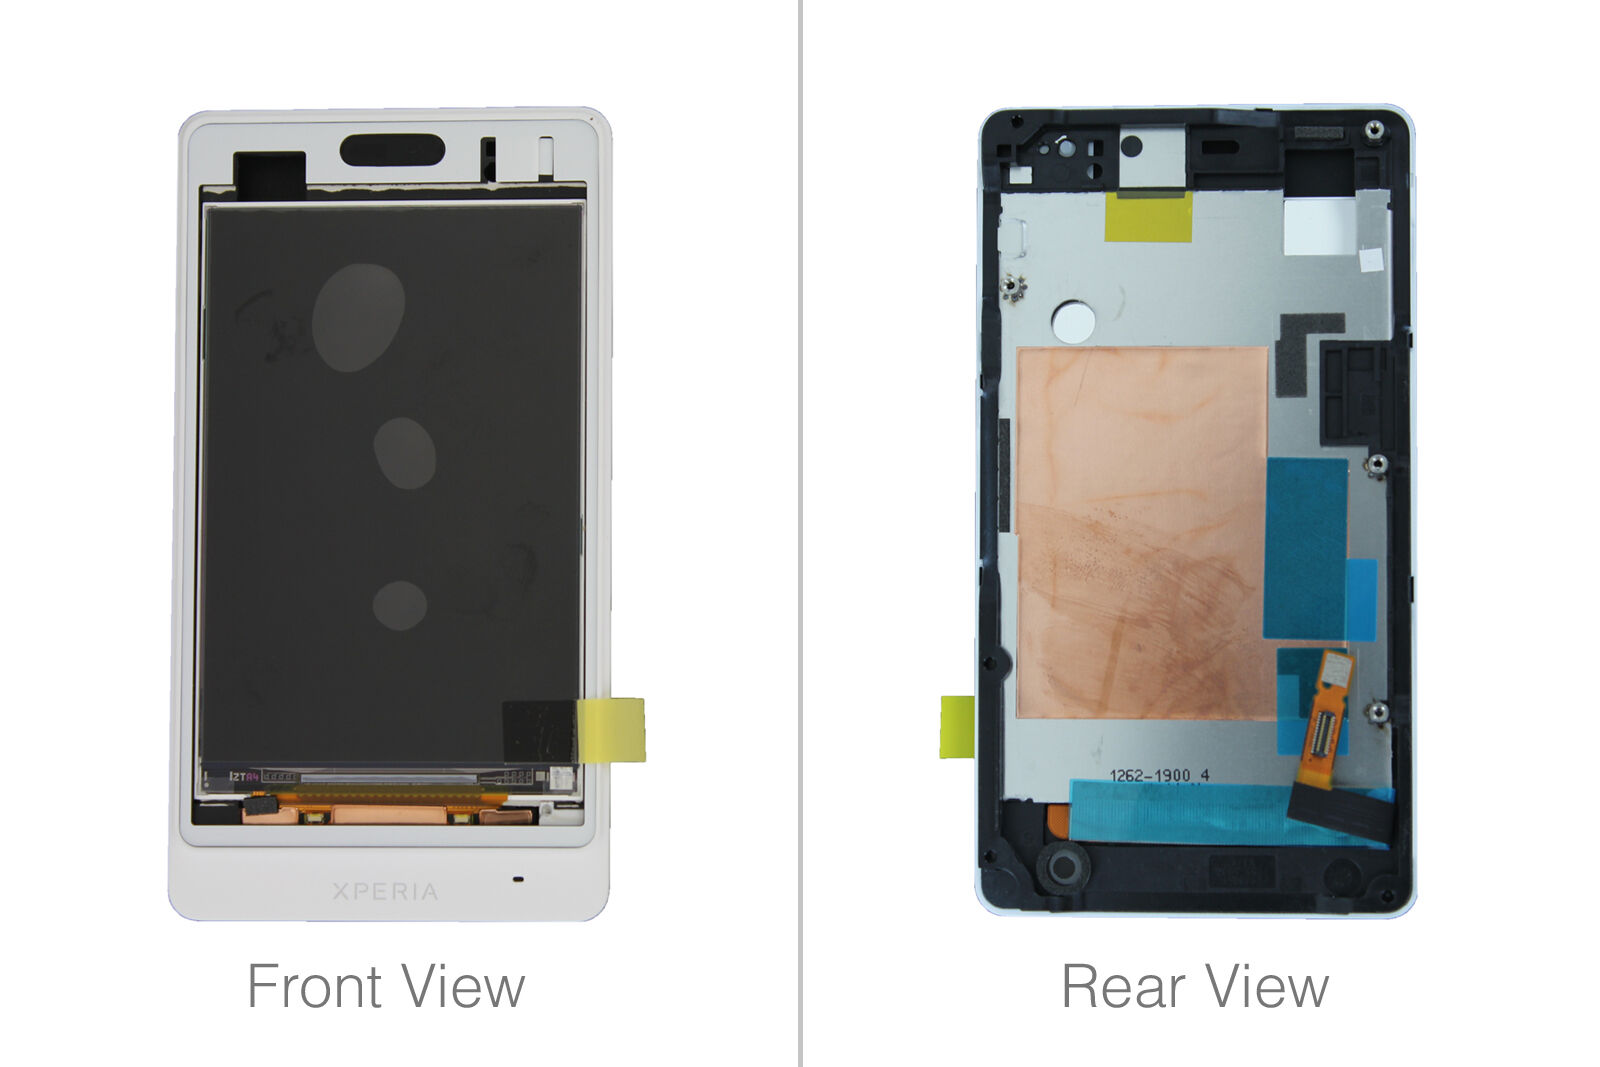 Genuine Sony St27i Xperia Go White LCD Screen With Frame - 1264-8198 ...